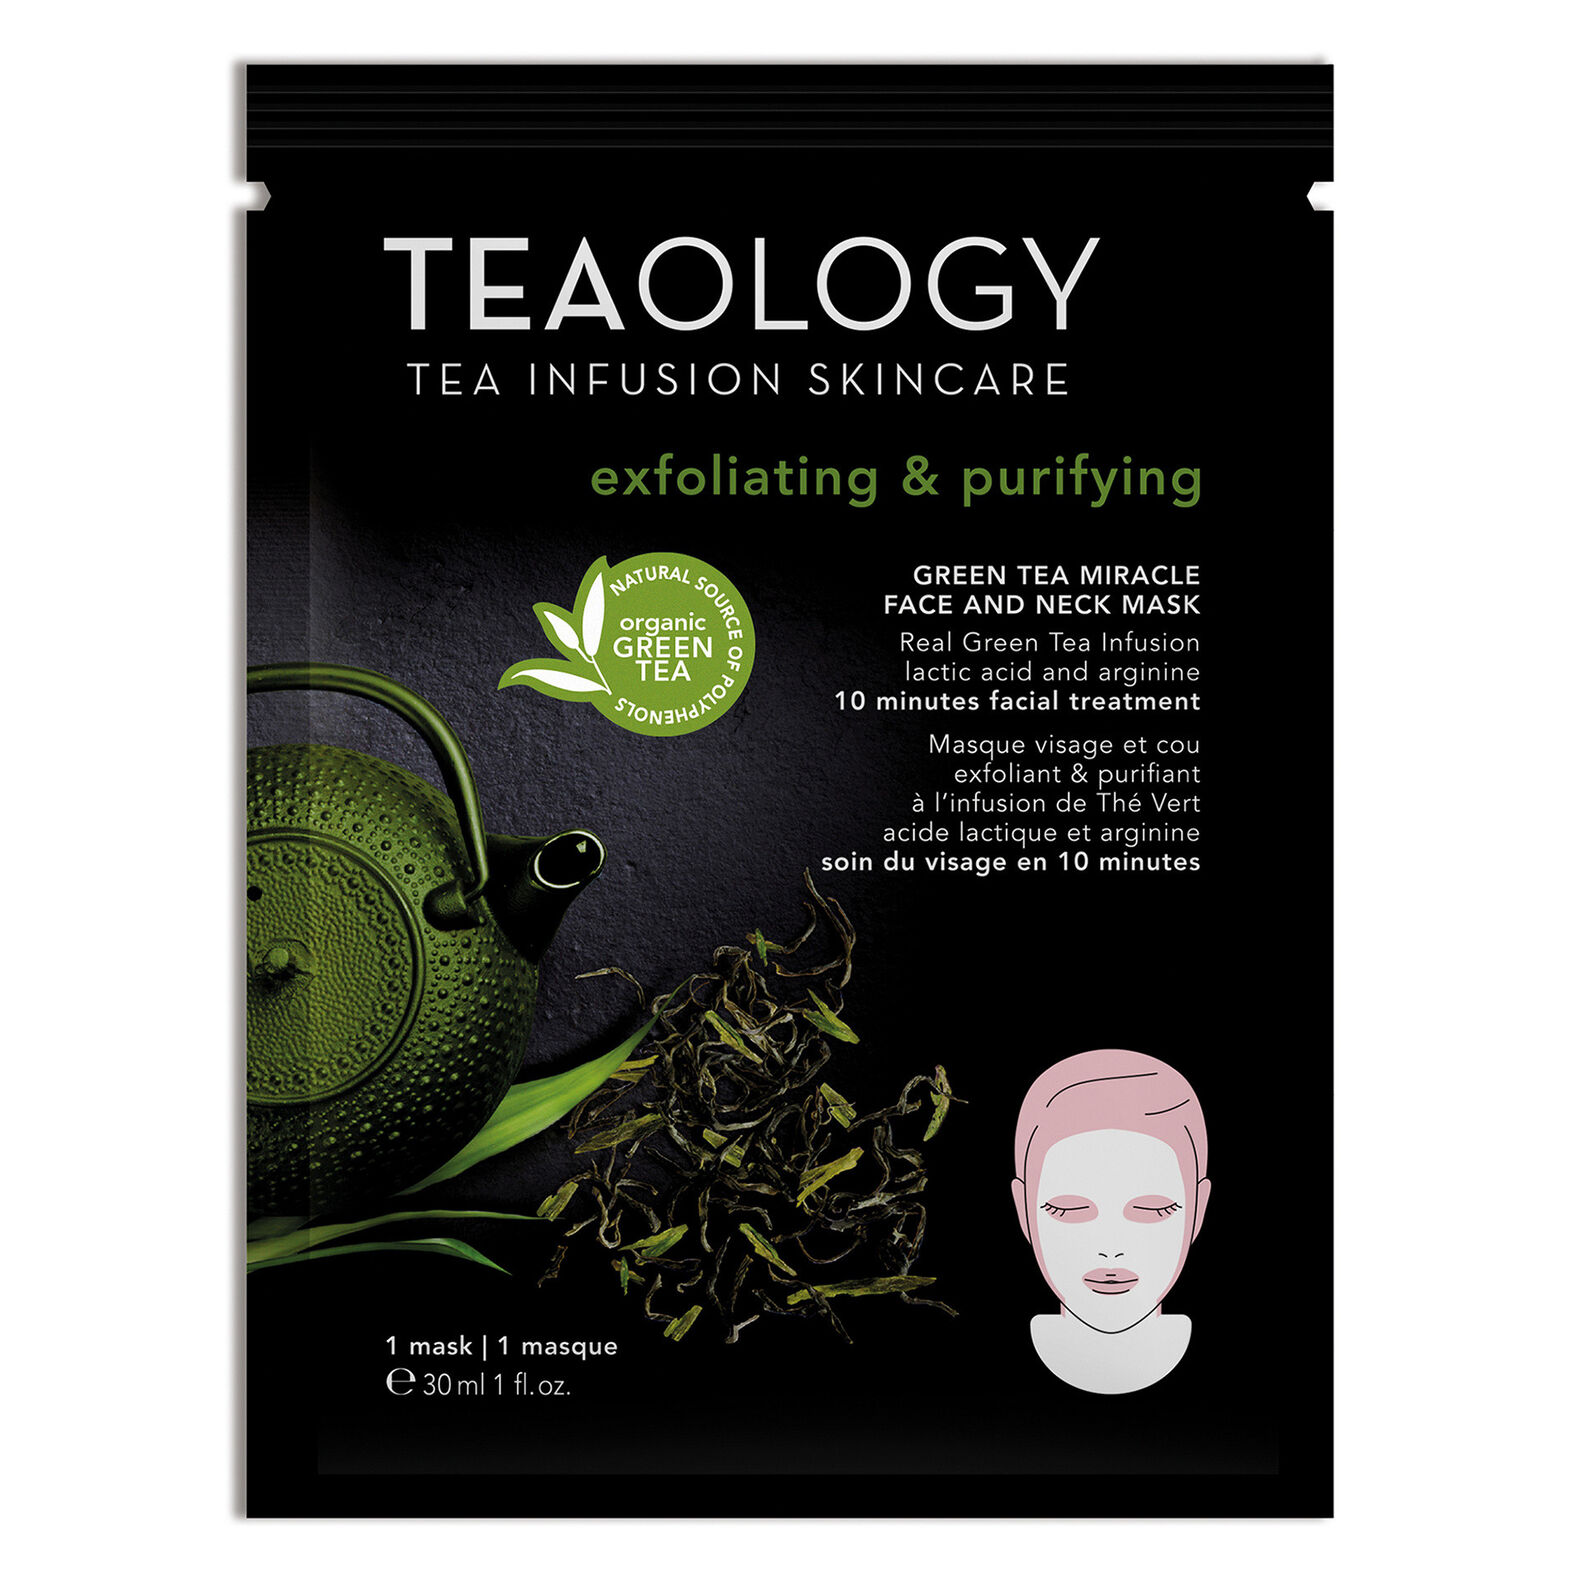 Green Tea Miracle Face and Neck Mask Exfoliating & Purifying 30 ml